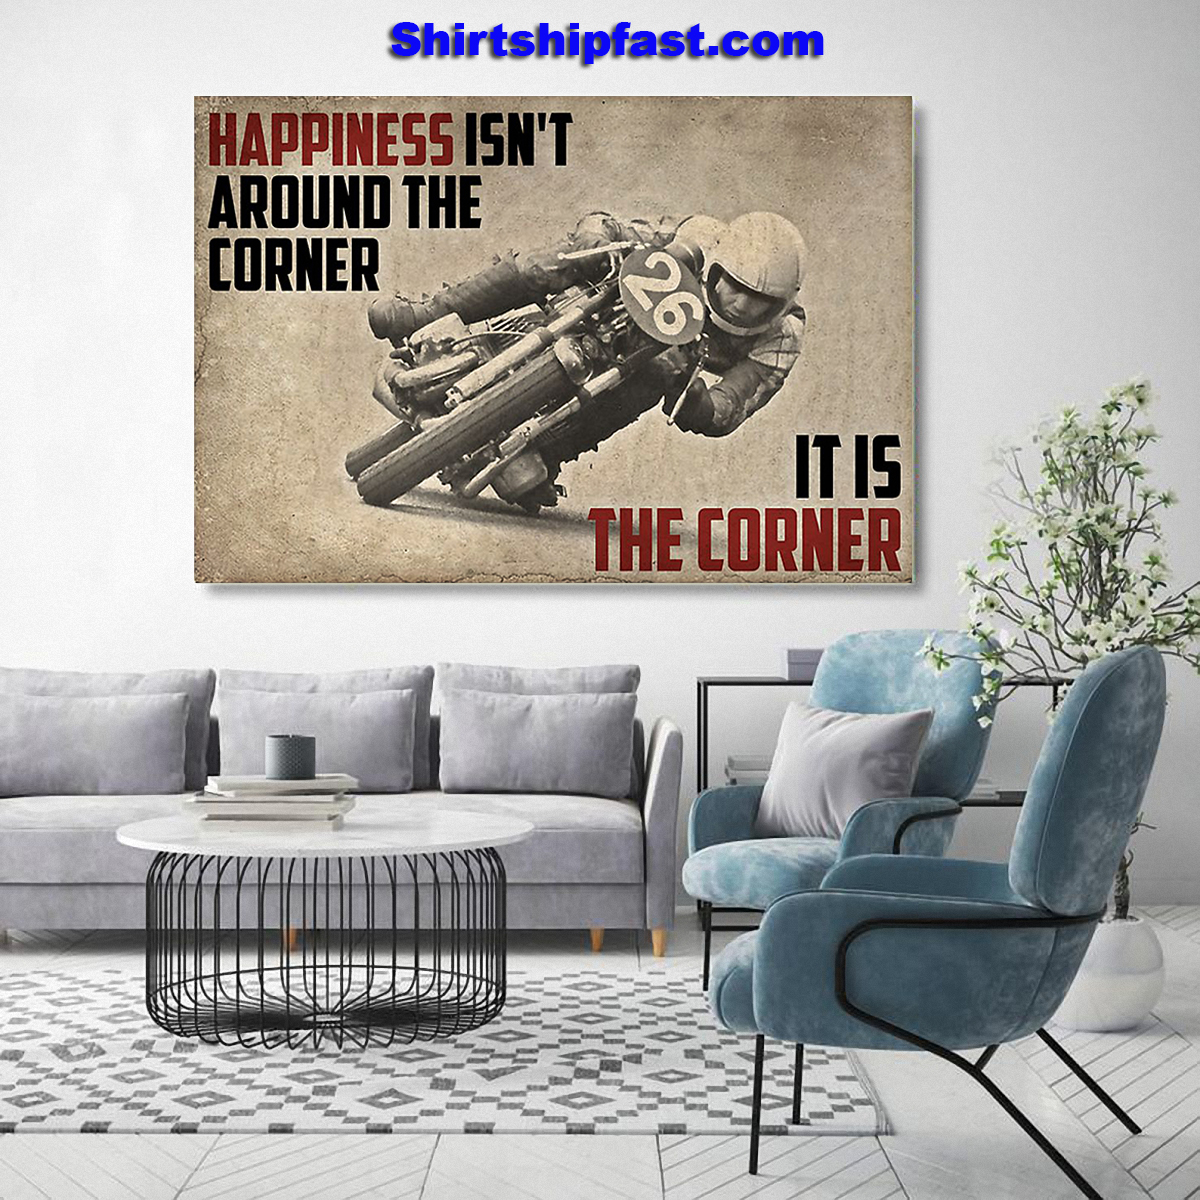 Canvas Motorcycle happiness isn't around the corner - Picture 2